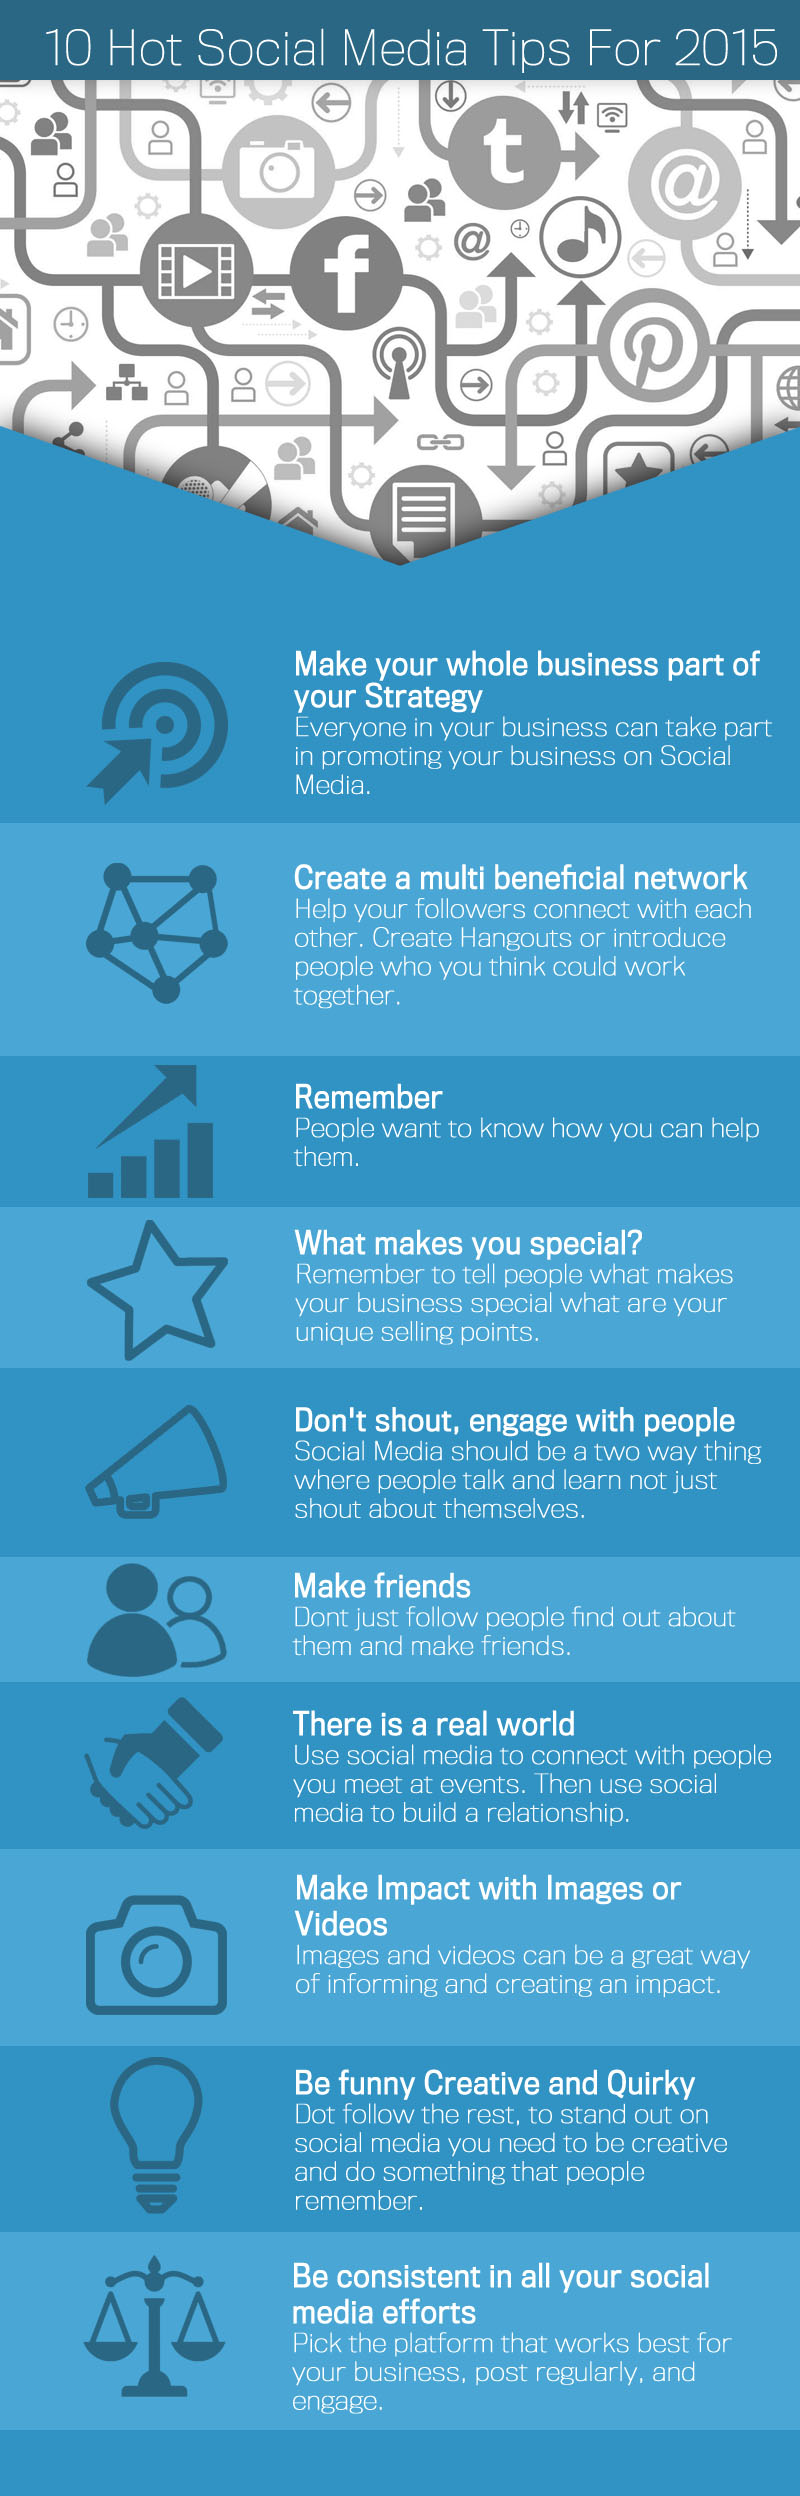 10 tips to make an impact on social media Gikmedia